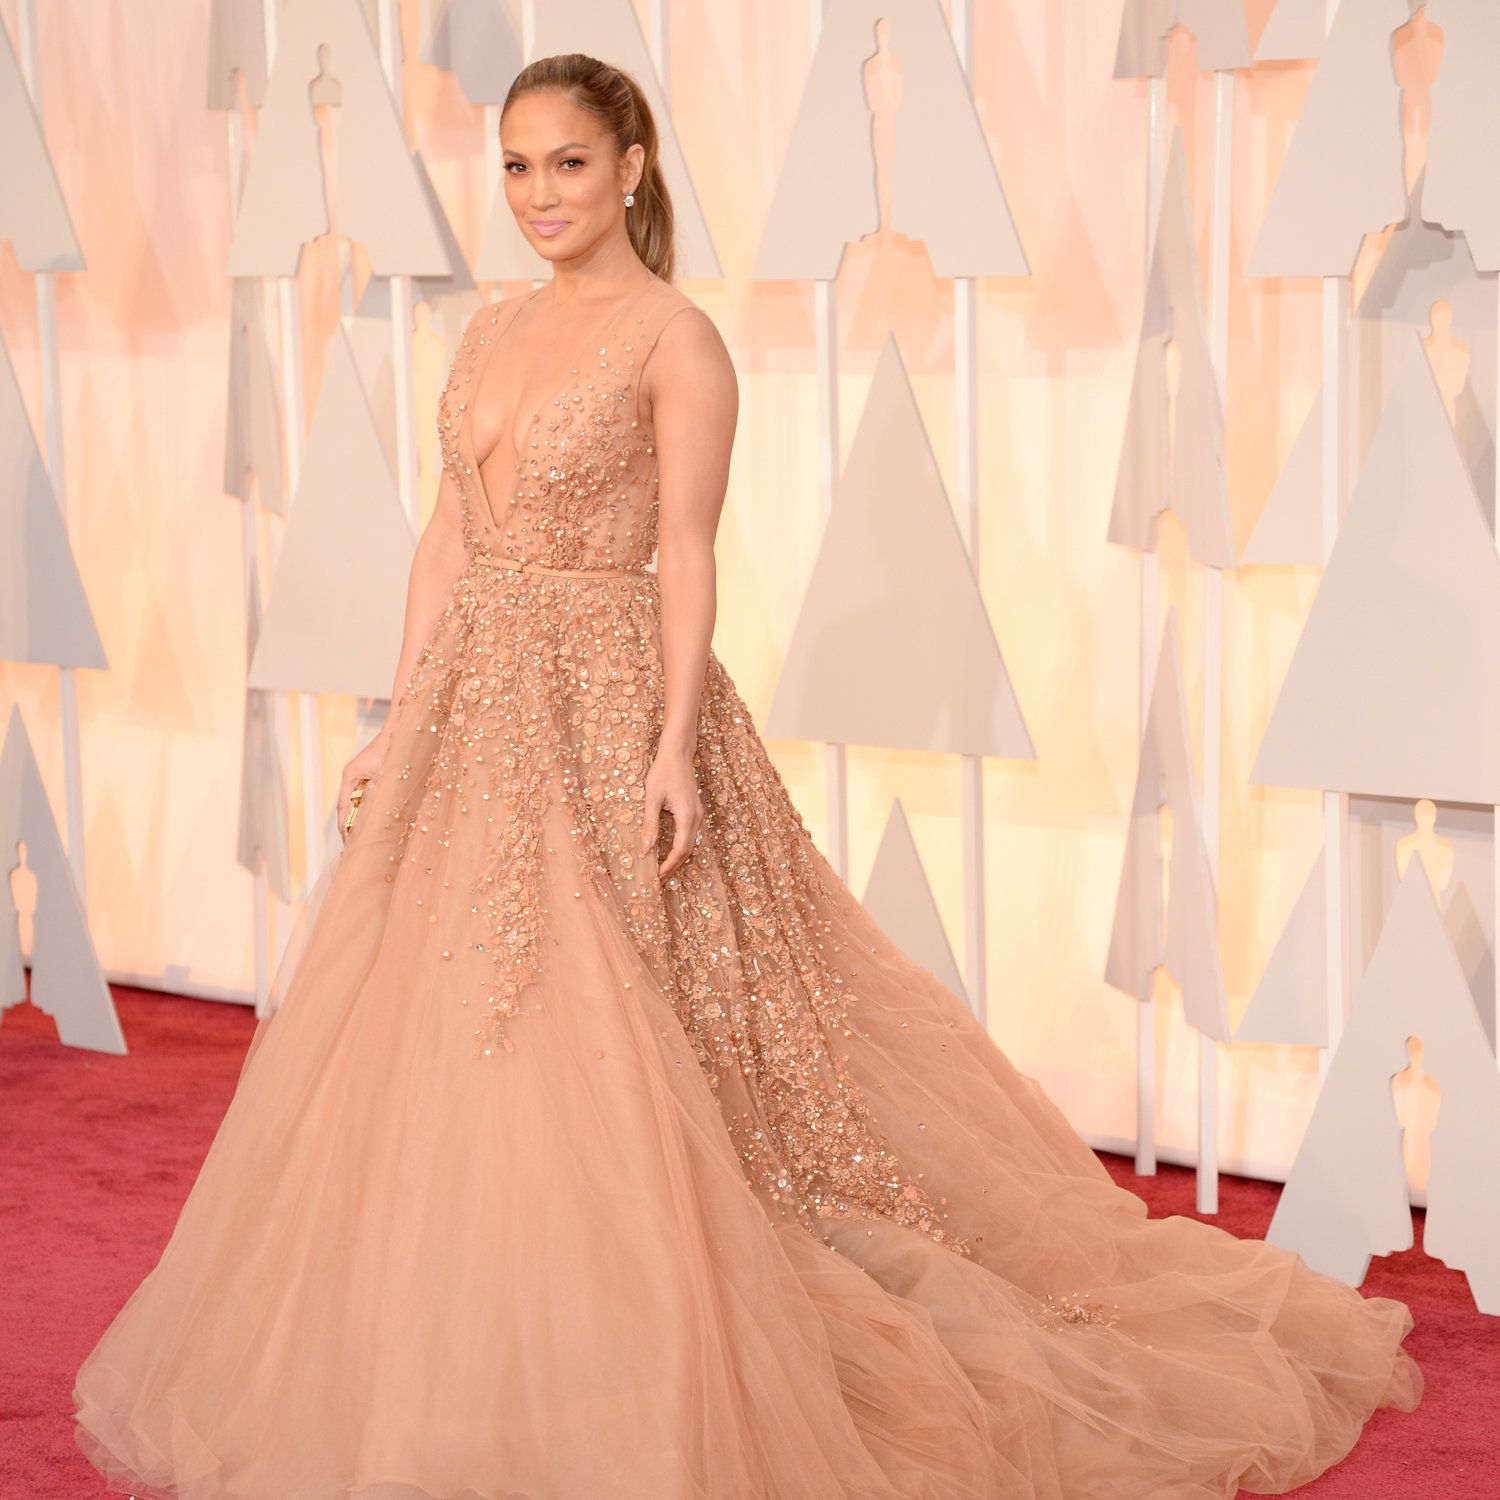 Get the latest on the 2015 Oscar Academy Awards, including nominations, predictions, winners, and red carpet fashion at Oscar.com